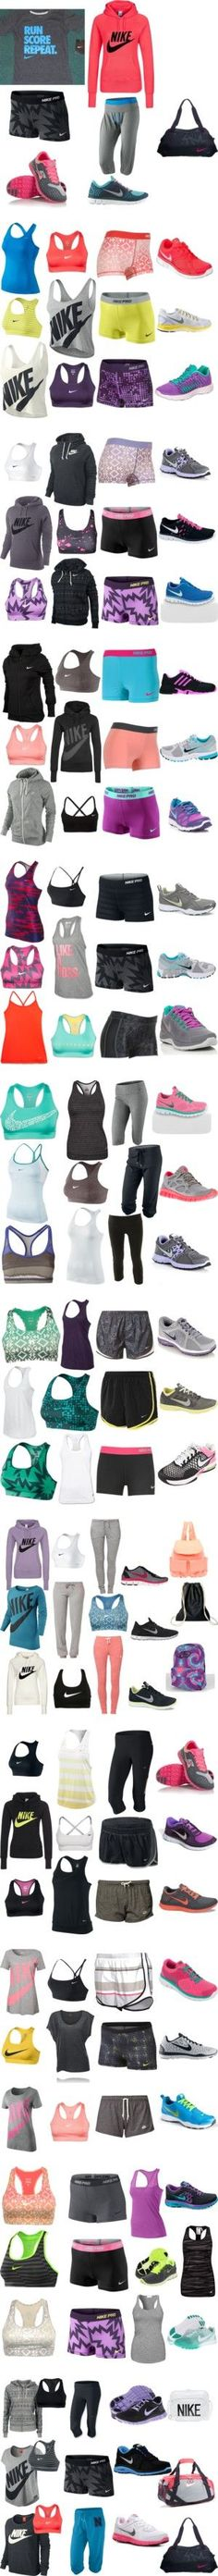 """Nike Running Outfits"" by cowgirrrl-up on Polyvore"